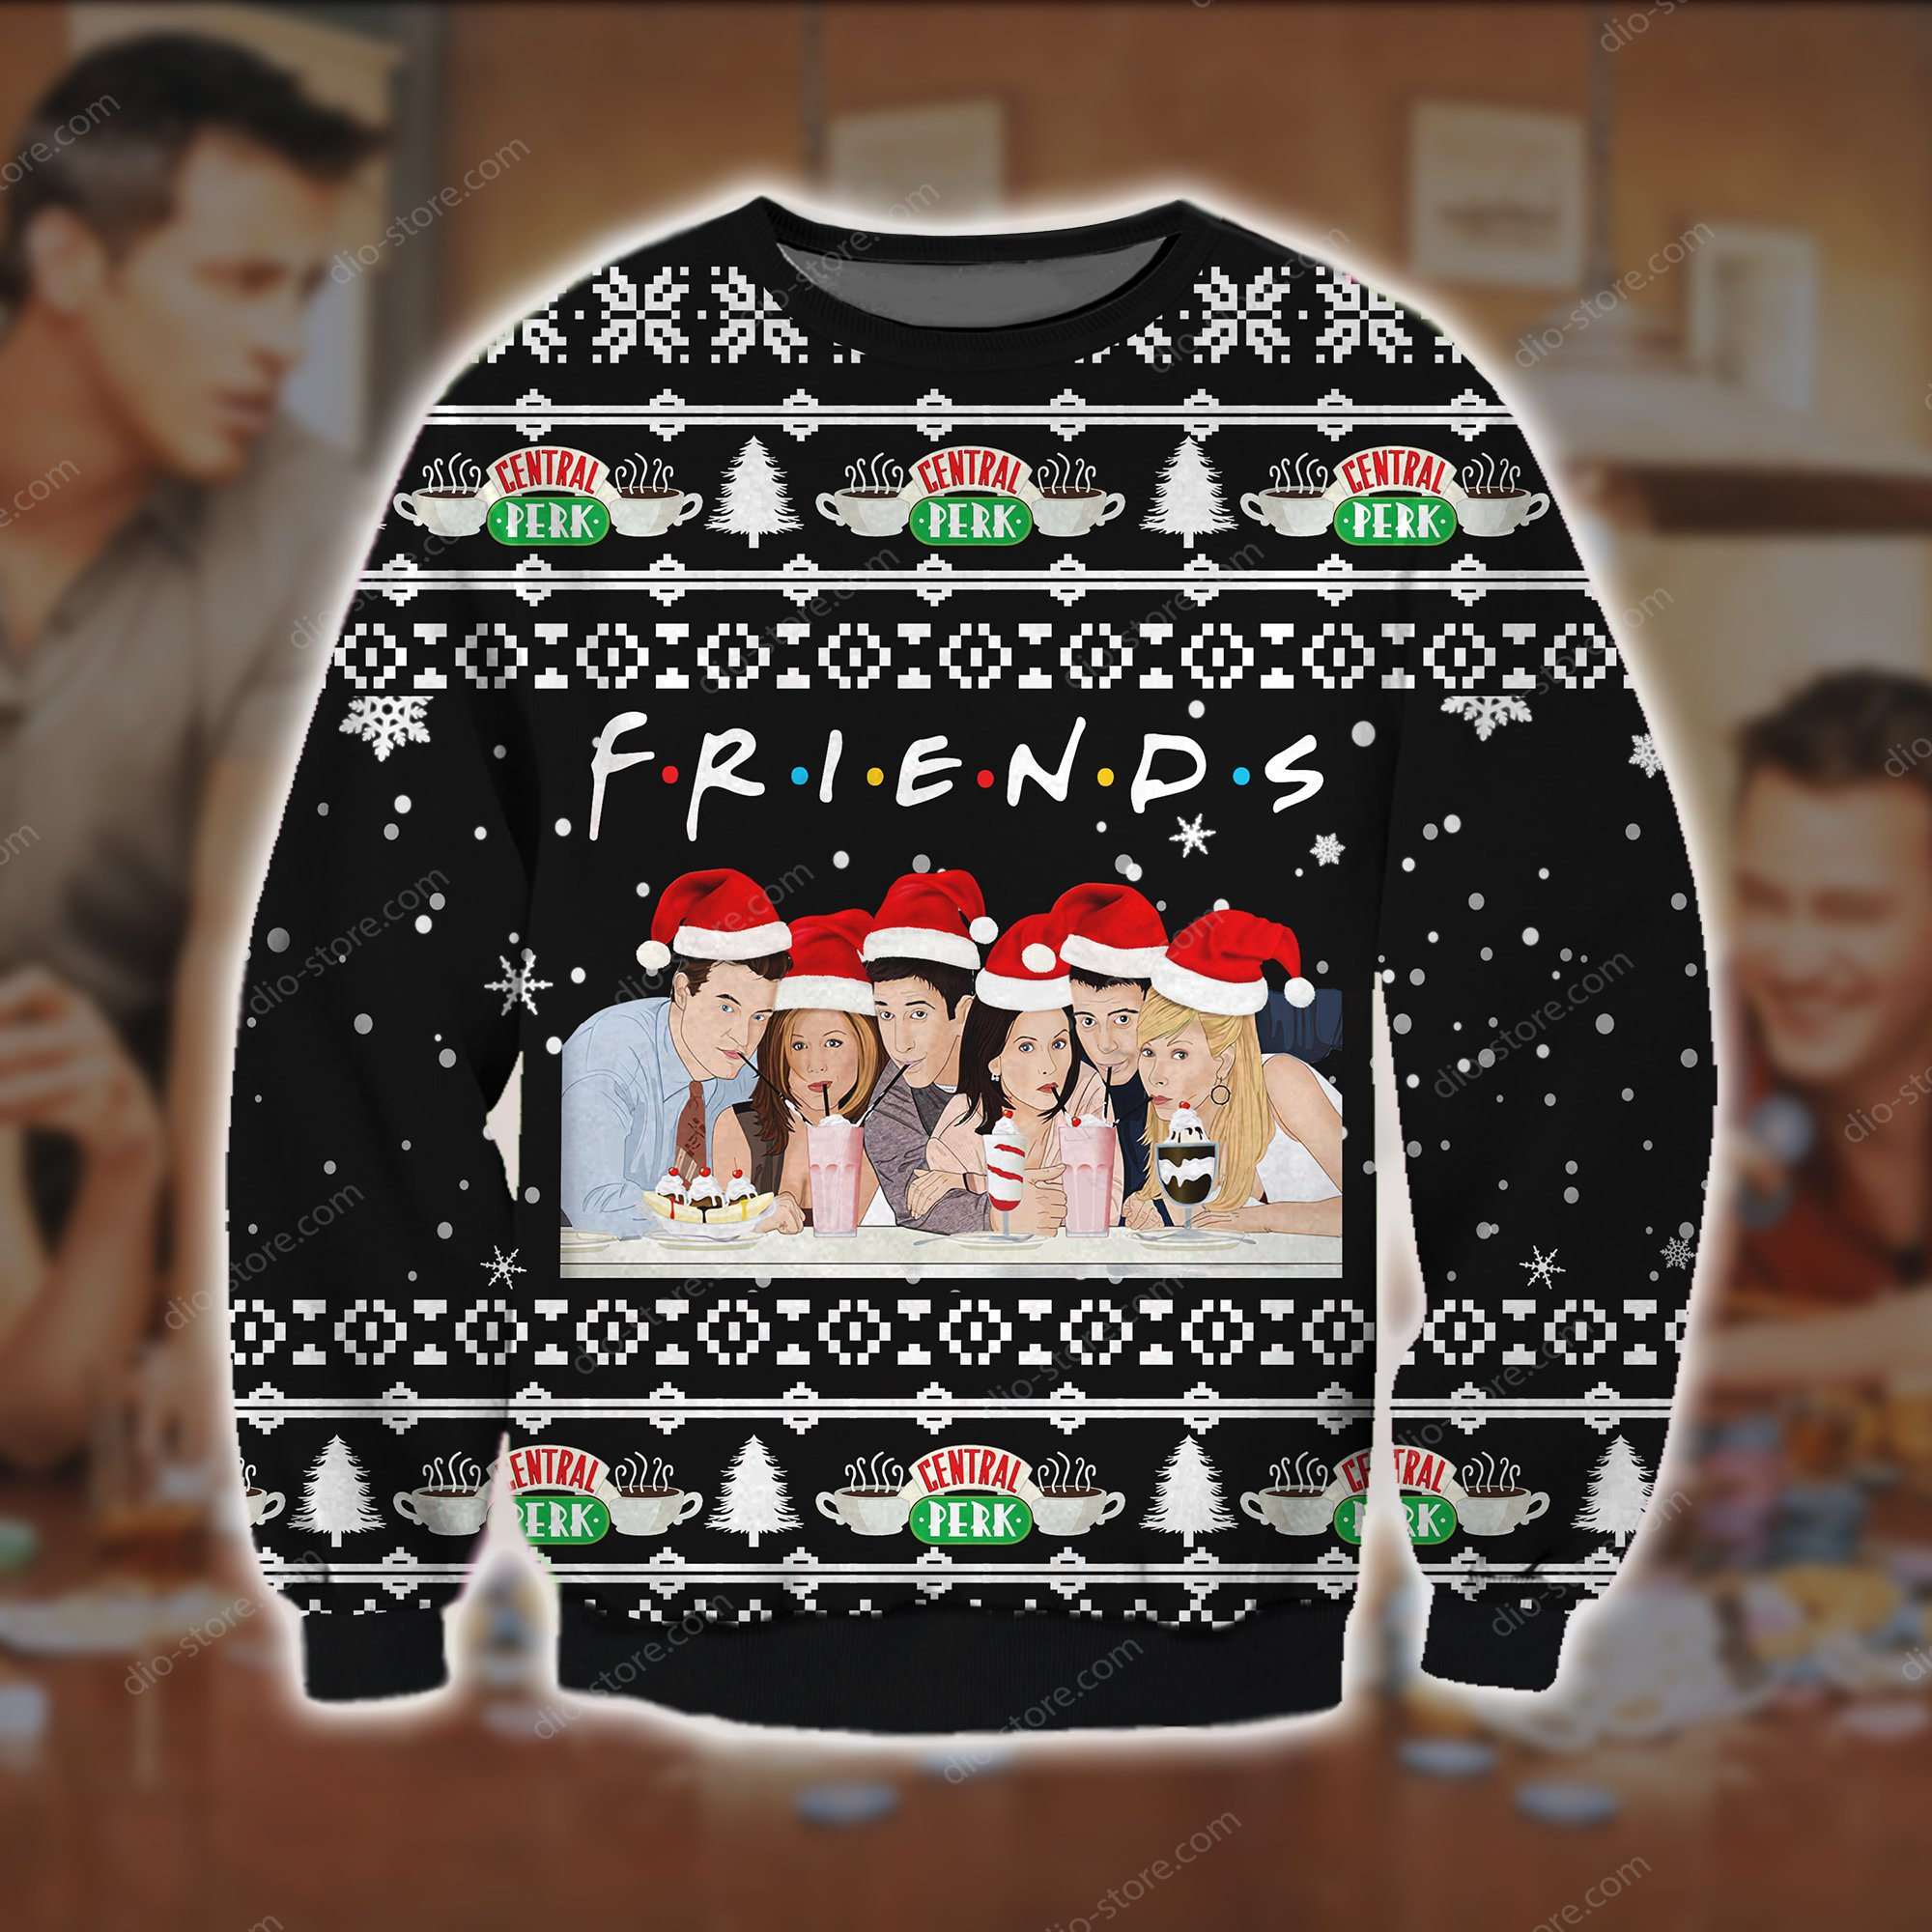 friend tv show all over printed ugly christmas sweater 2 - Copy (2)